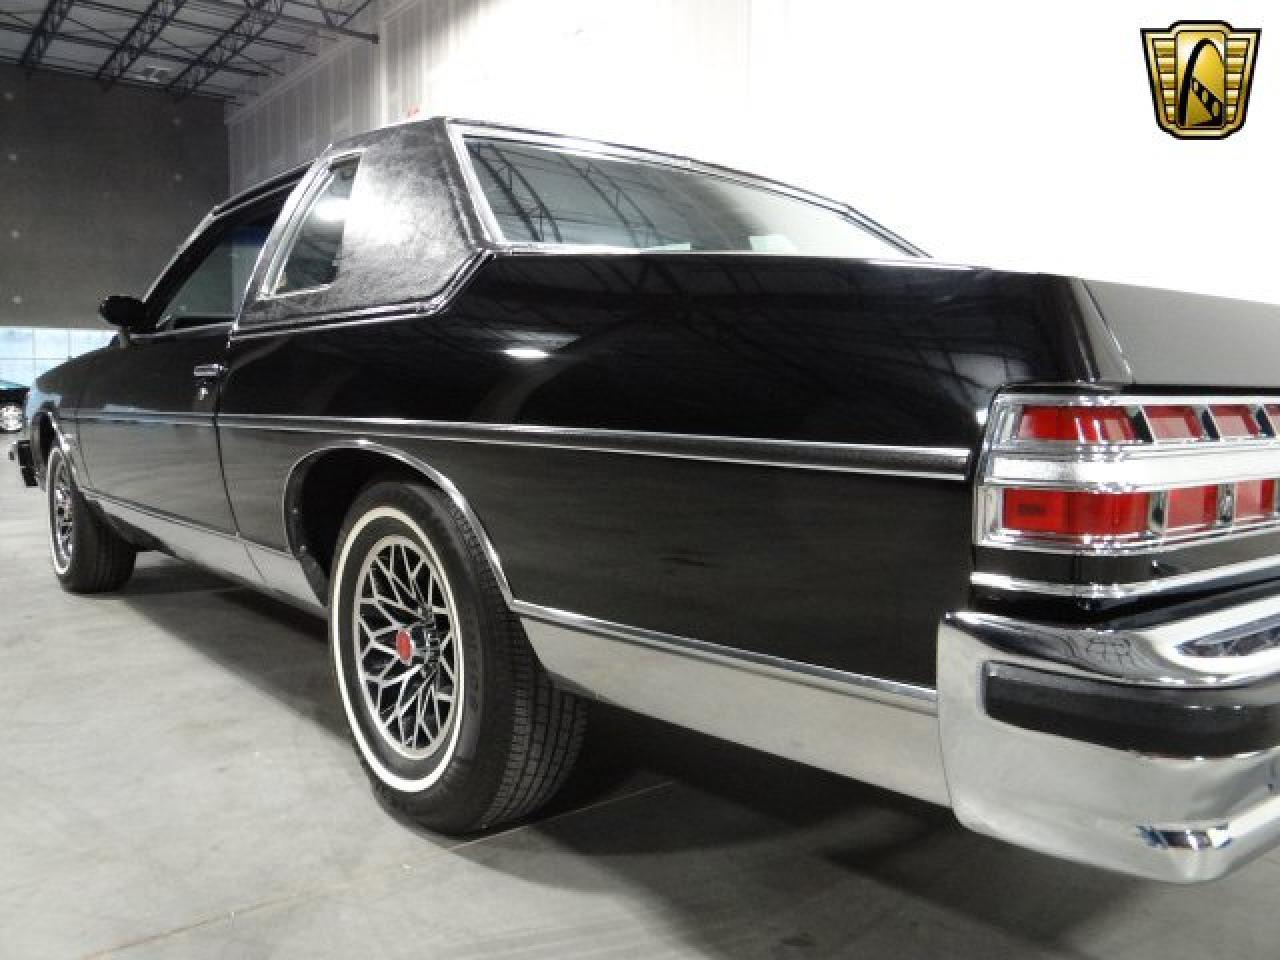 Large Picture of '79 Pontiac Bonneville located in Georgia - $17,595.00 Offered by Gateway Classic Cars - Atlanta - KOIW